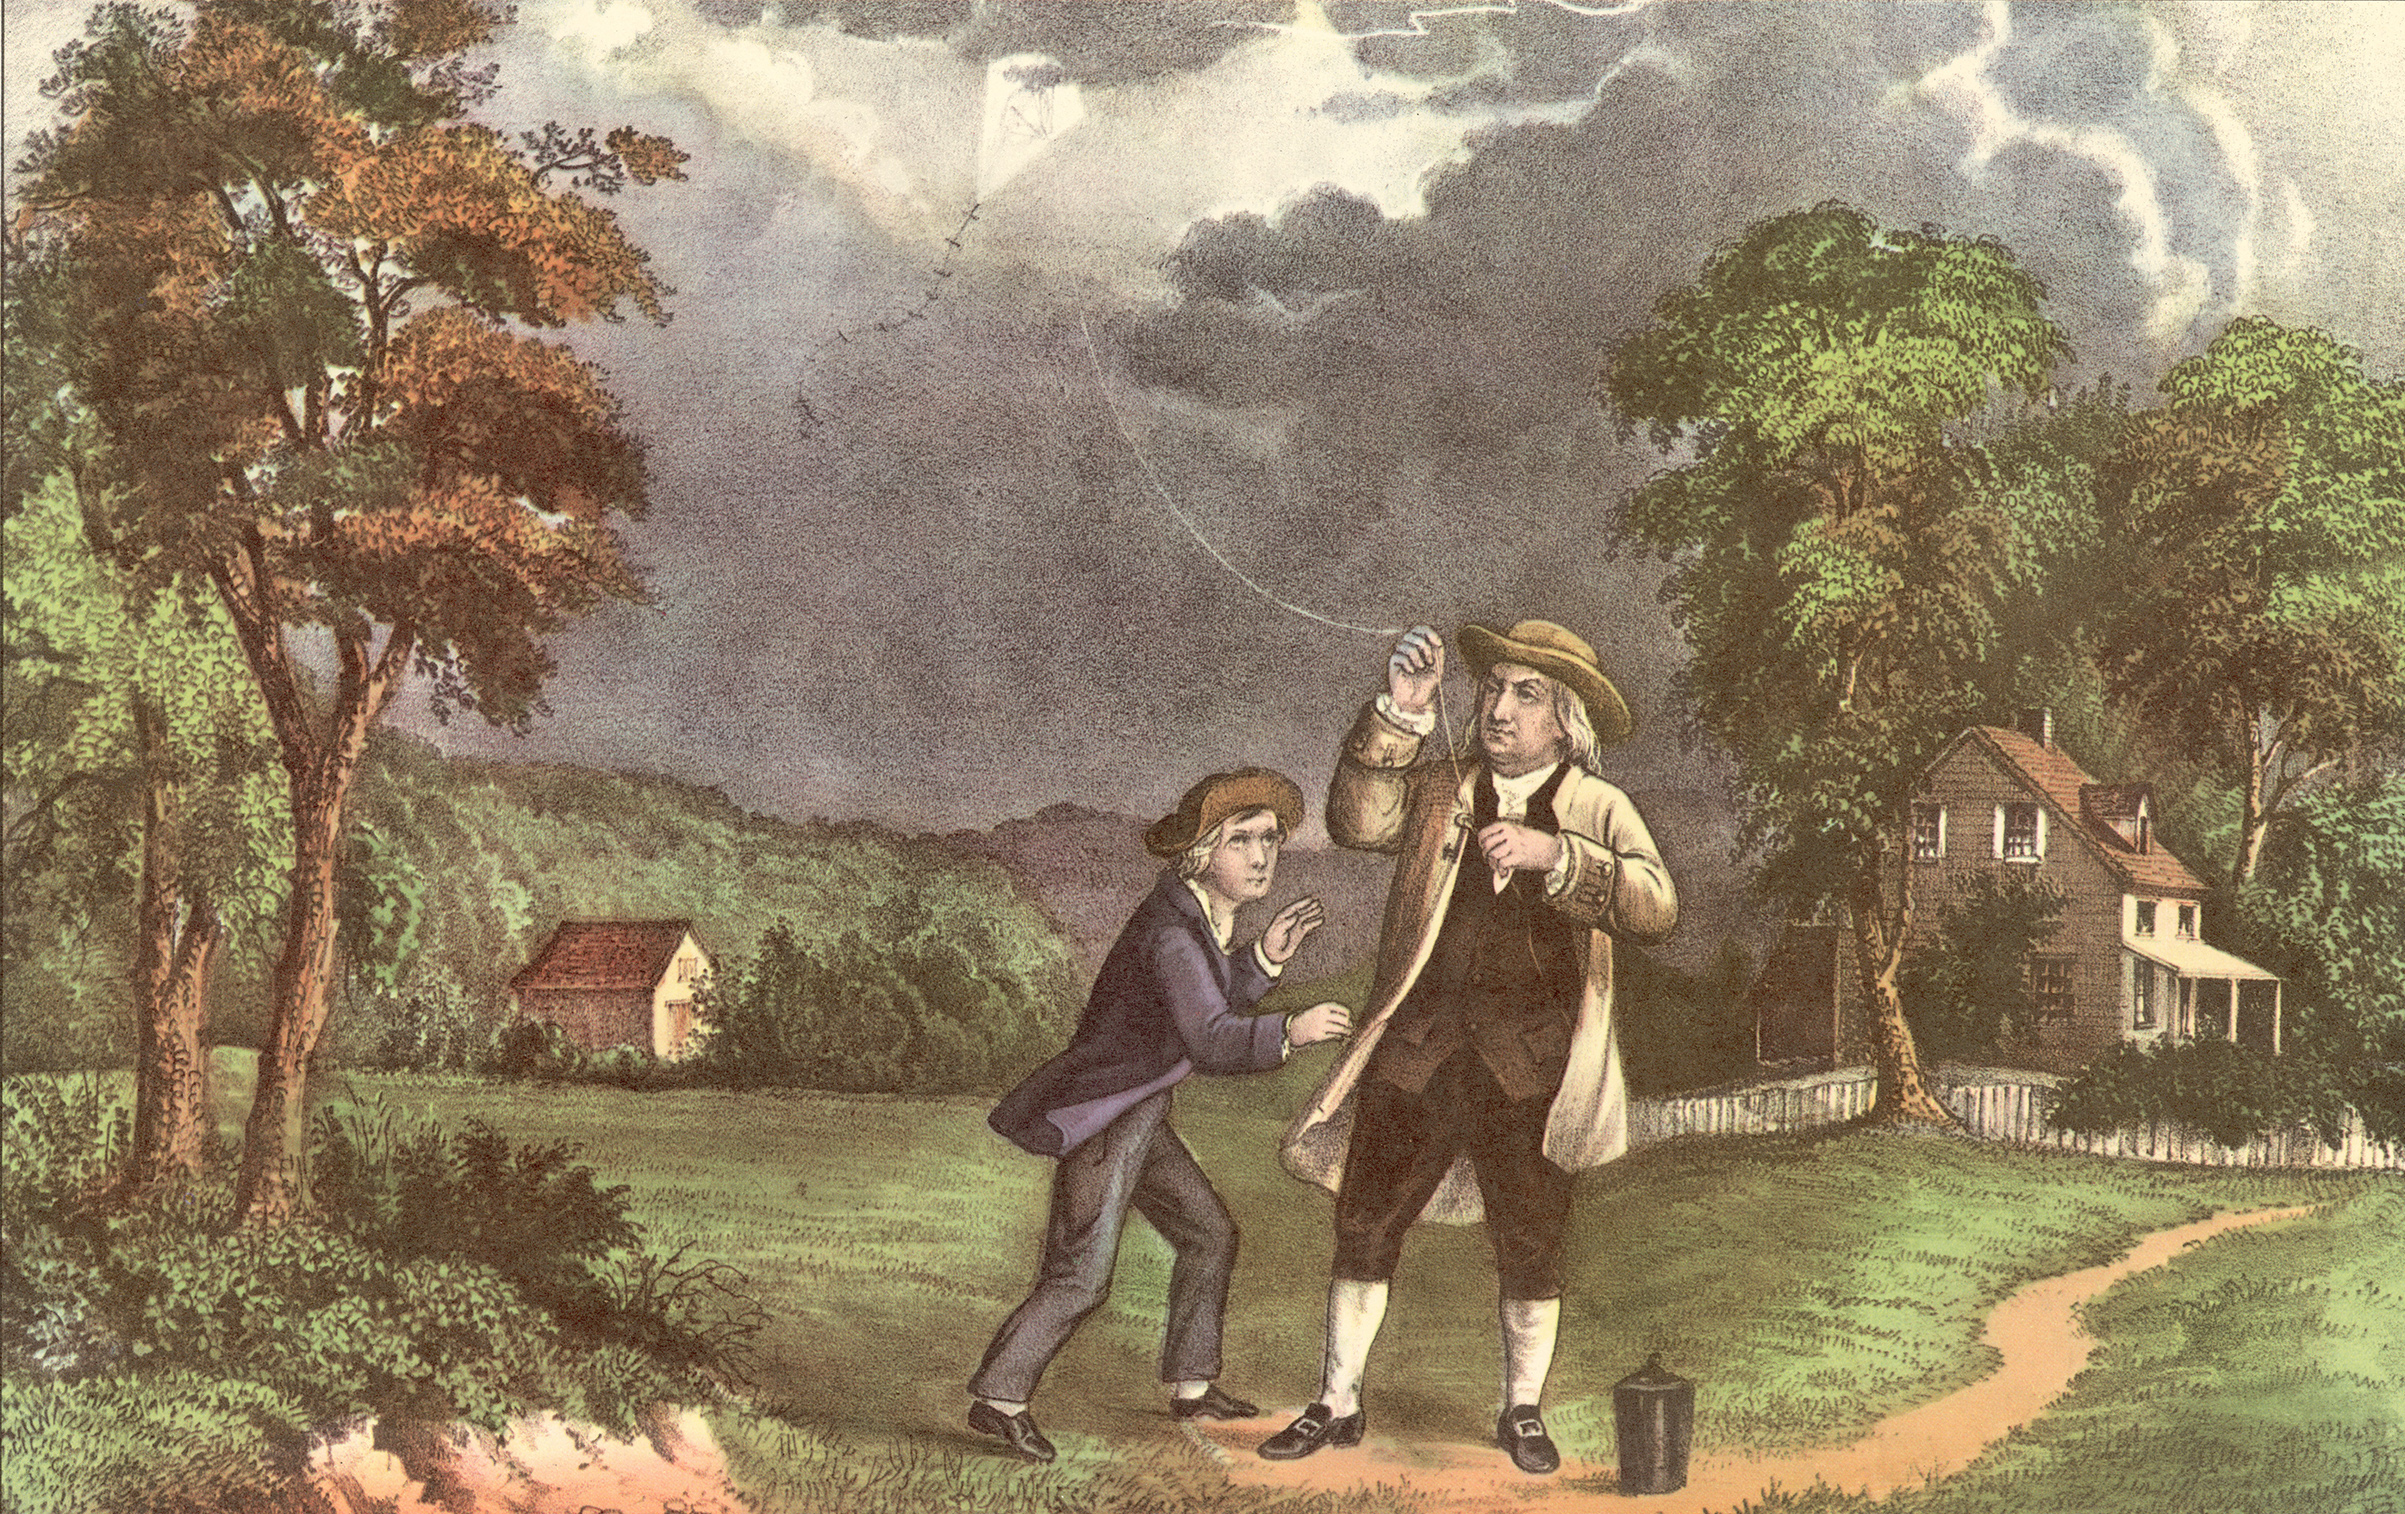 Benjamin Franklin and his son William used a key and a kite to prove that lightning was electricity